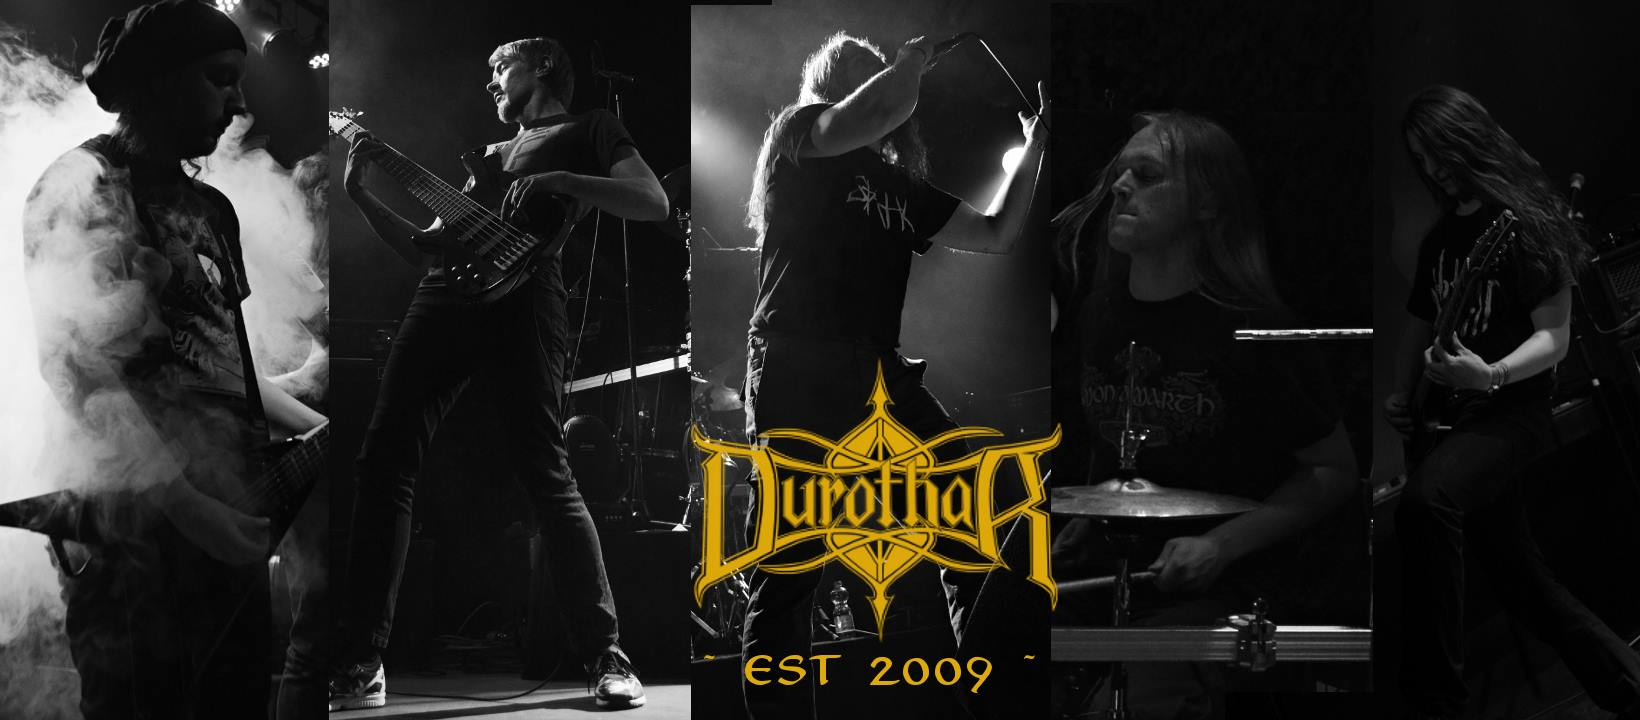 Durothar, Viking Metal, Metal Bash